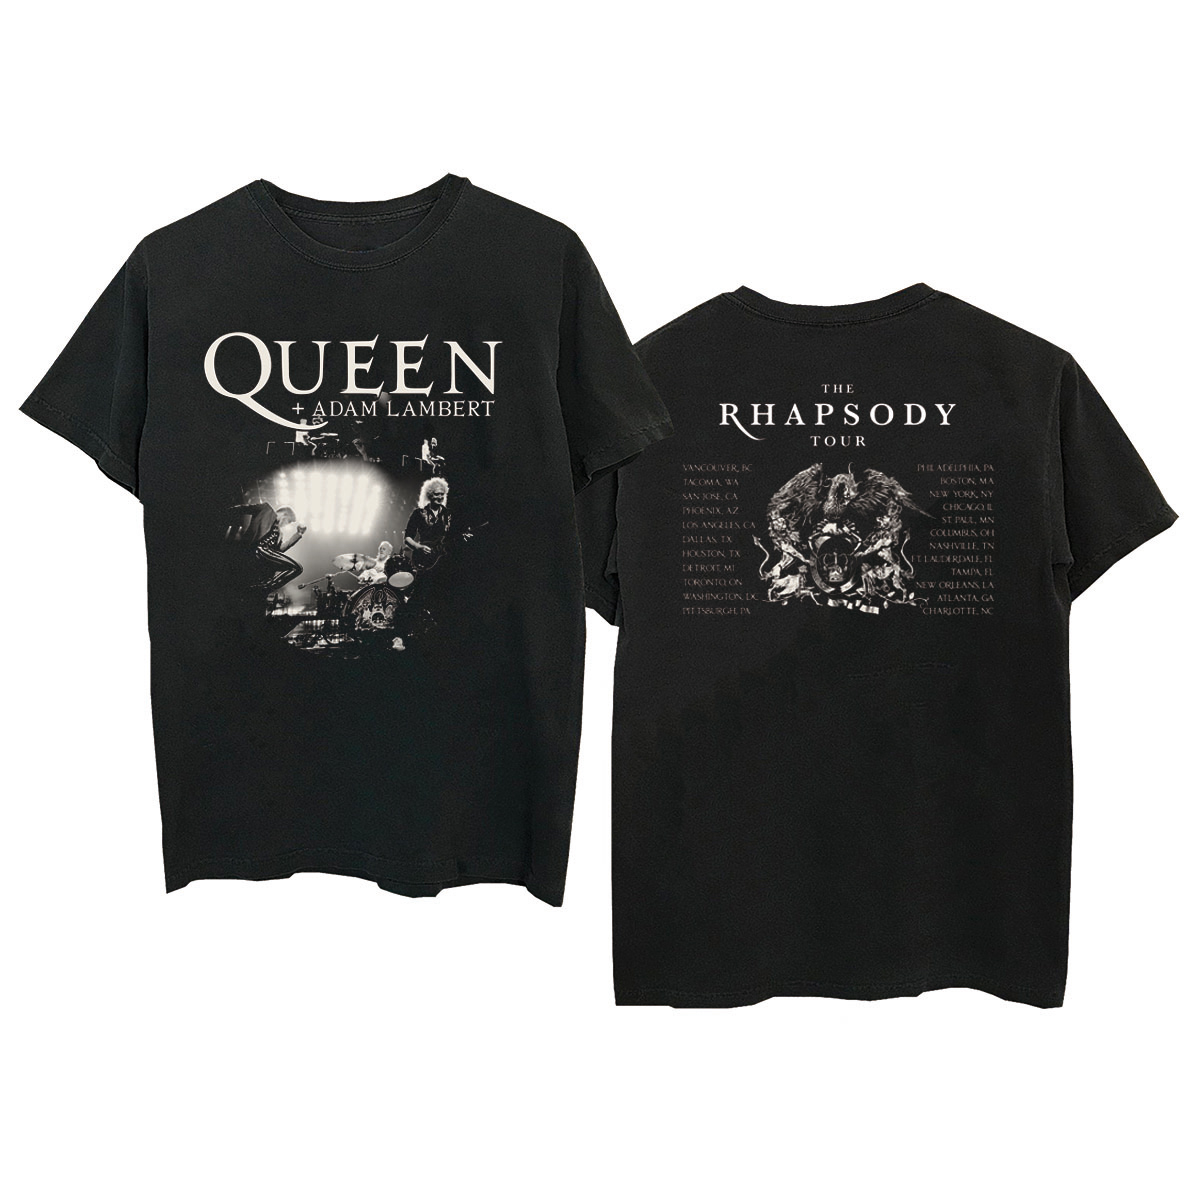 2019 Rhapsody Tour Photo T-Shirt